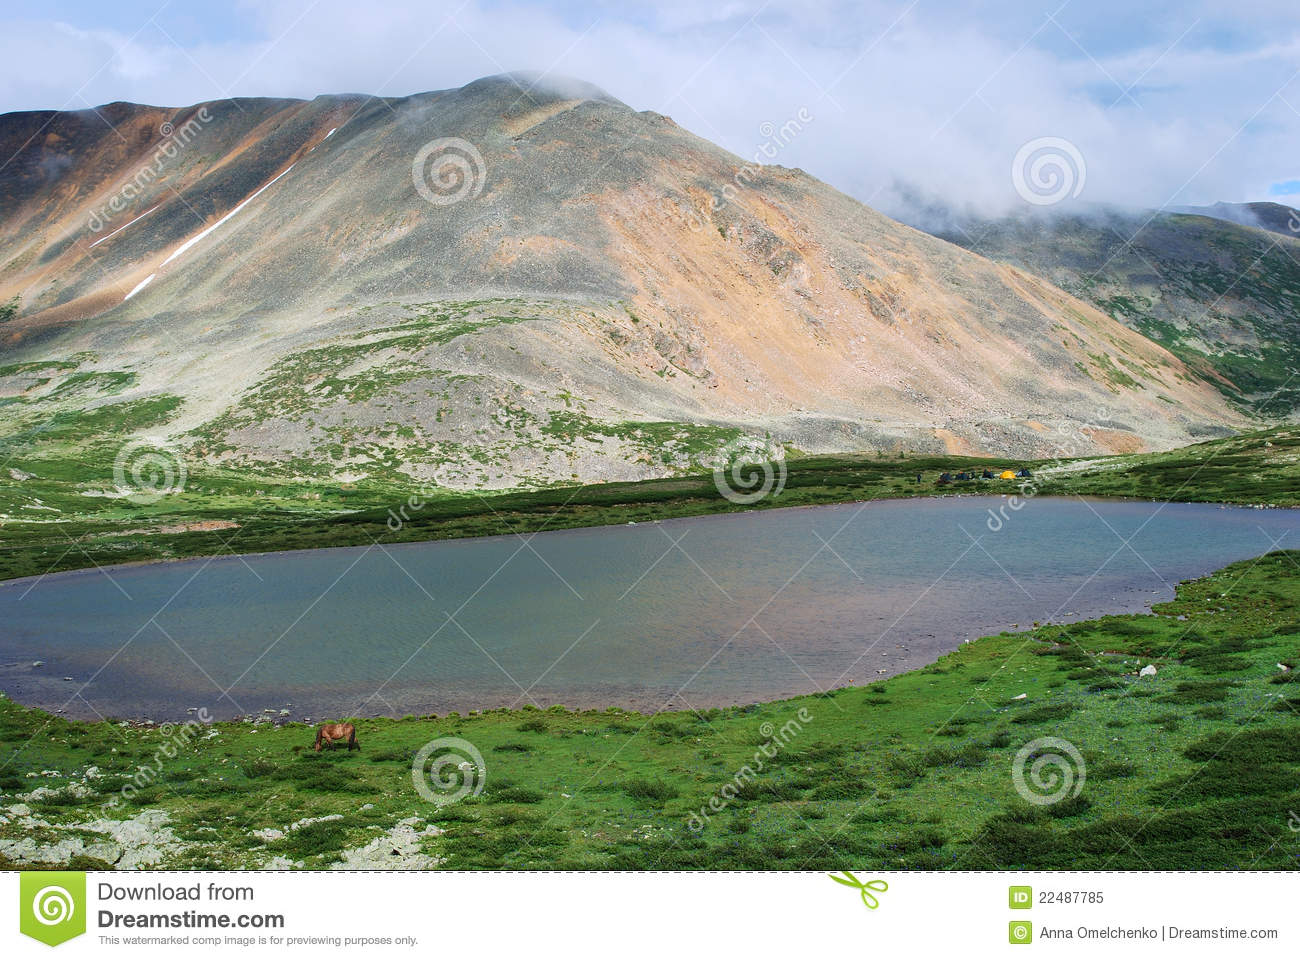 Mountainsee. Gorny Altai, Russland